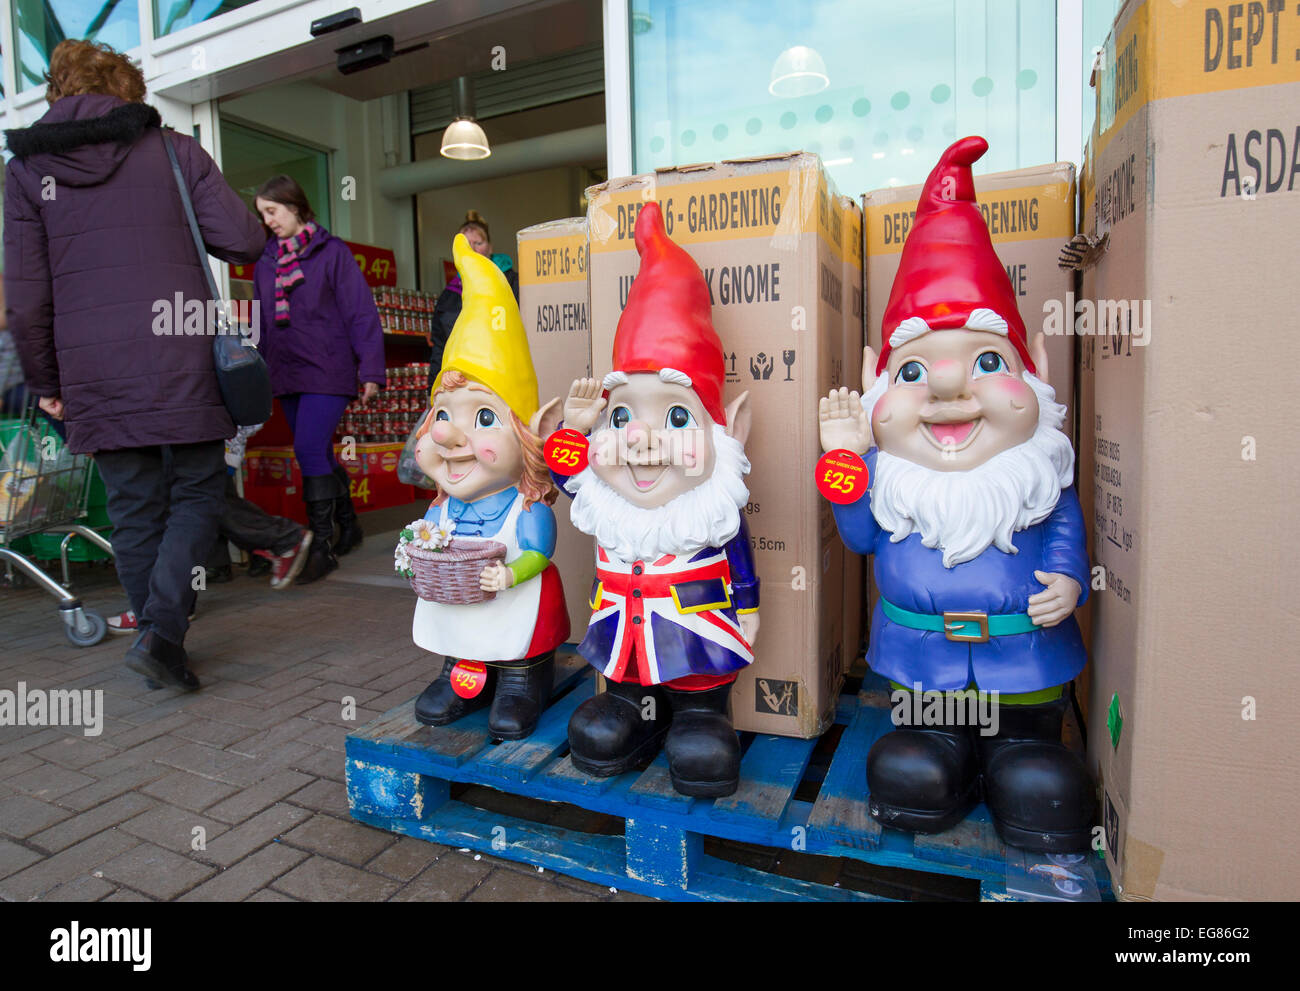 giant garden gnomes on sale at asada kendal